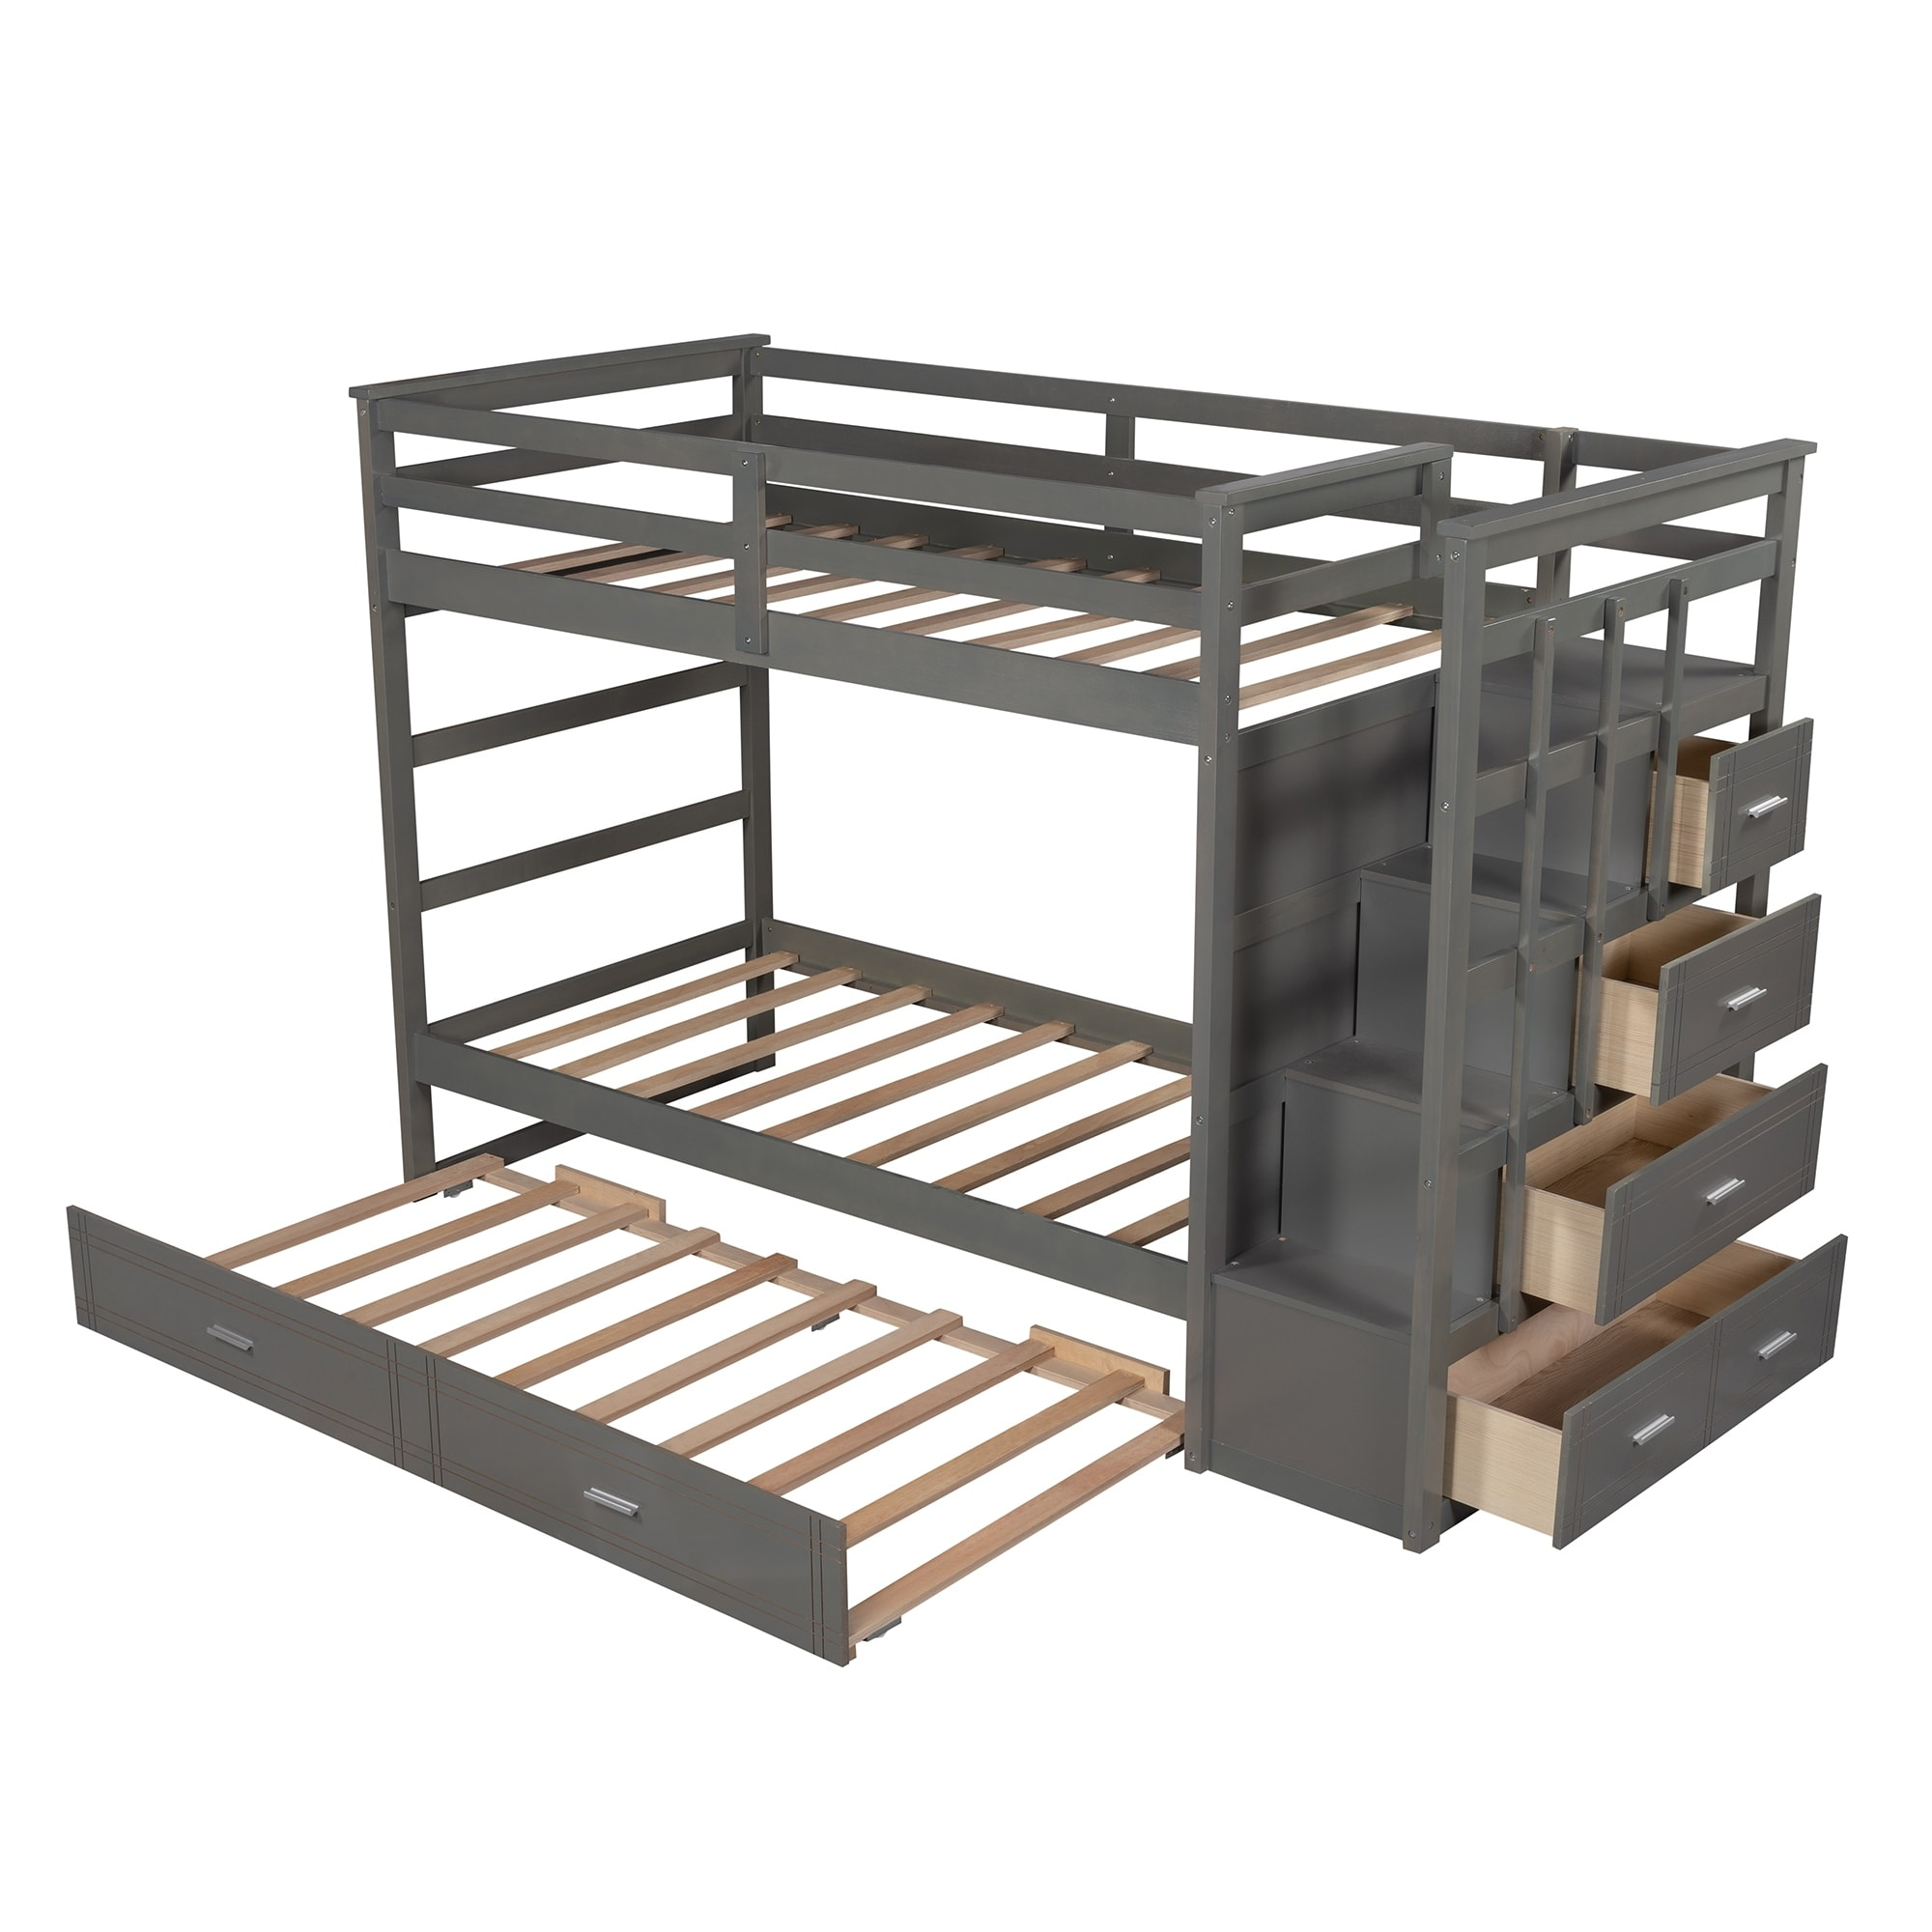 Shop For Bunk Bed For Kids Twin Over Twin Bunk Bed With Trundle And Staircase Get Free Delivery On Everything At Overstock Your Online Furniture Outlet Store Get 5 In Rewards With Club O 34257831